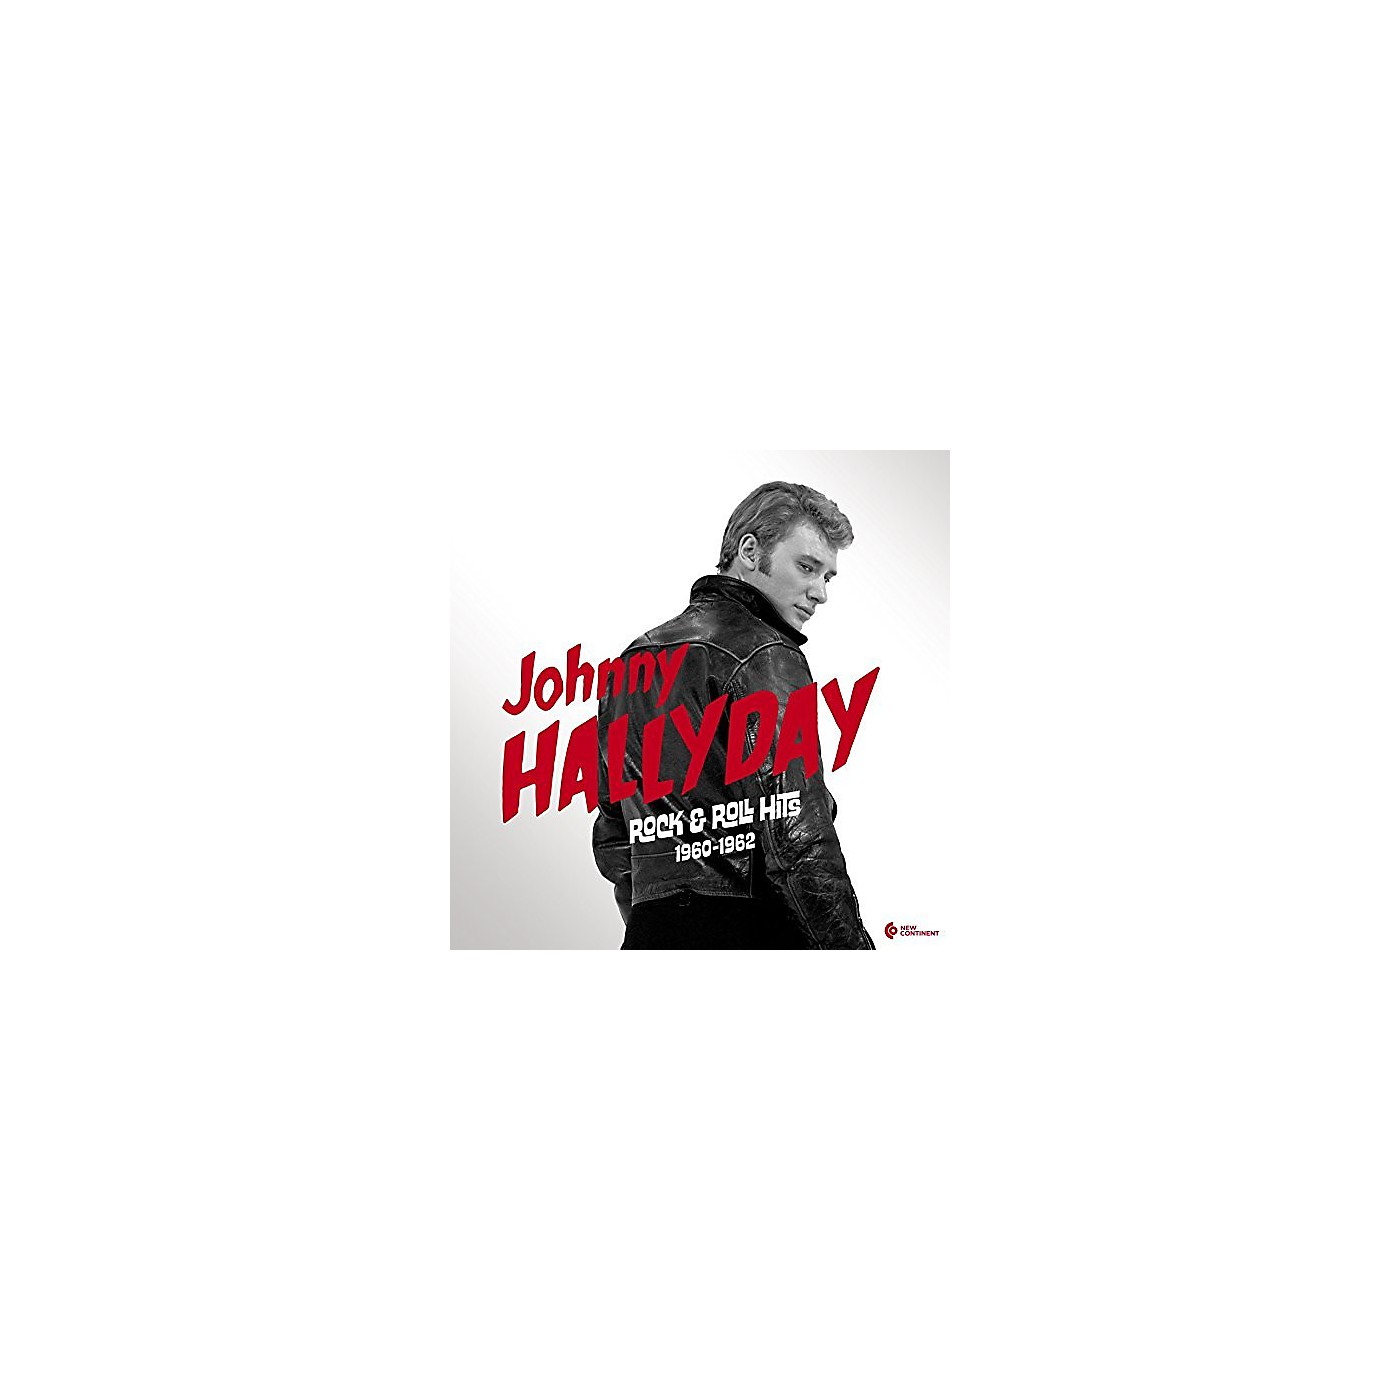 Alliance Johnny Hallyday - Rock & Roll Hits 1960-1962 thumbnail